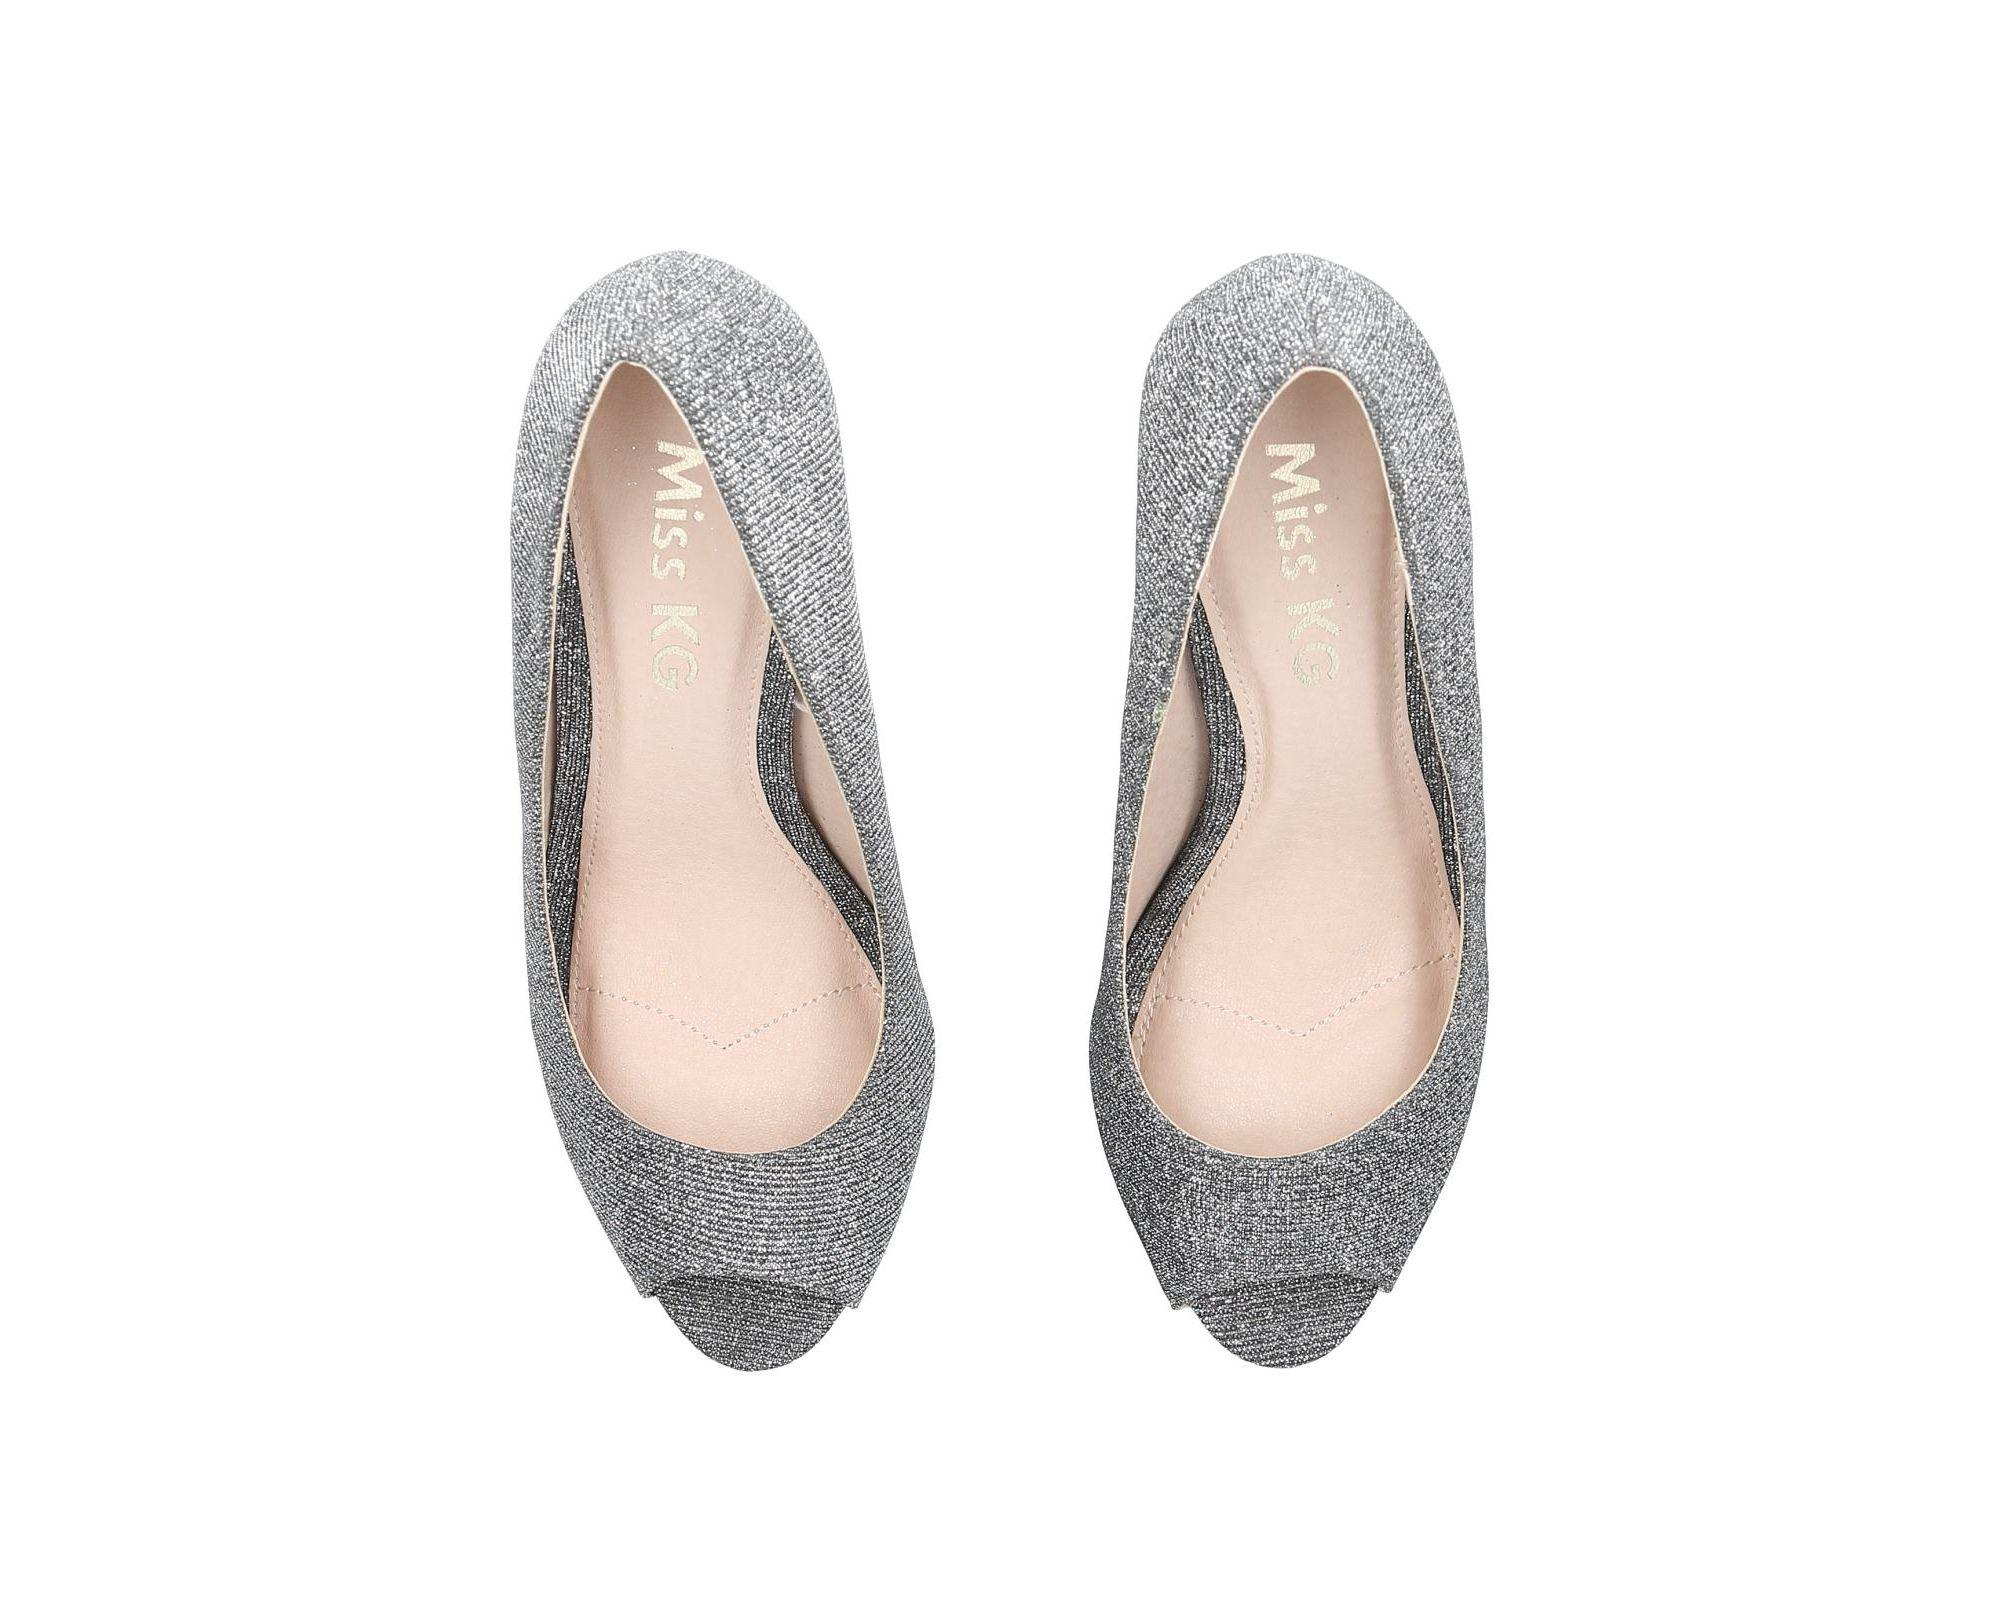 ca808dc06f6 Miss Kg - Gray Pewter  cooper  Mid Heel Court Shoes - Lyst. View fullscreen